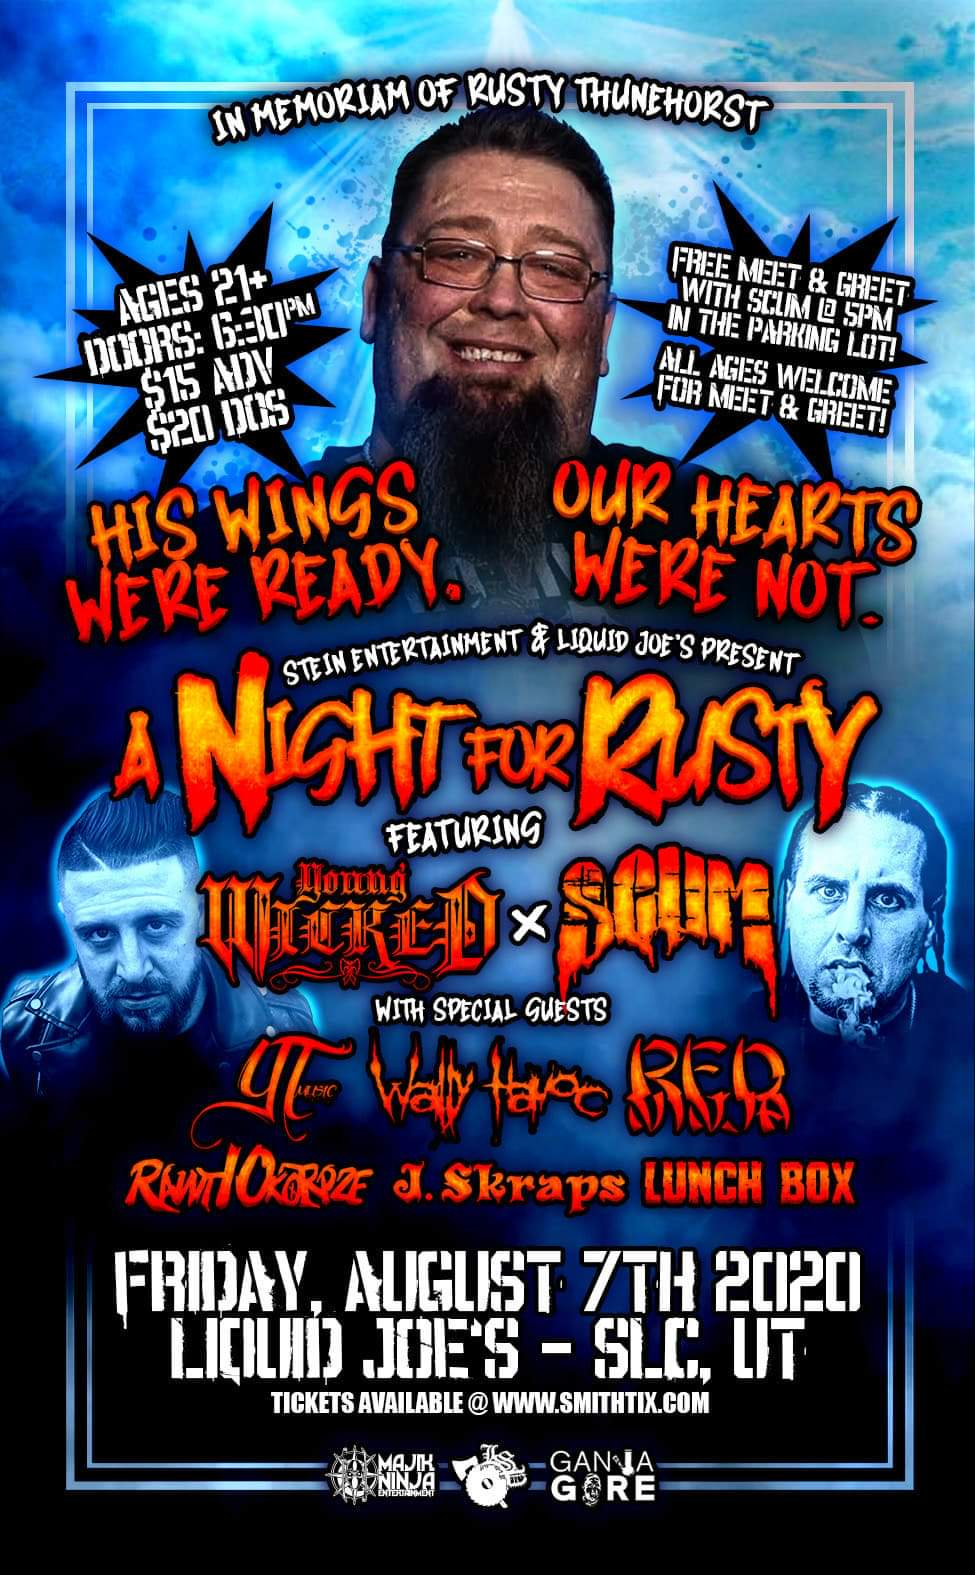 A Night For Rusty (ft. Young Wicked, SCUM, more) - Salt Lake City, UT